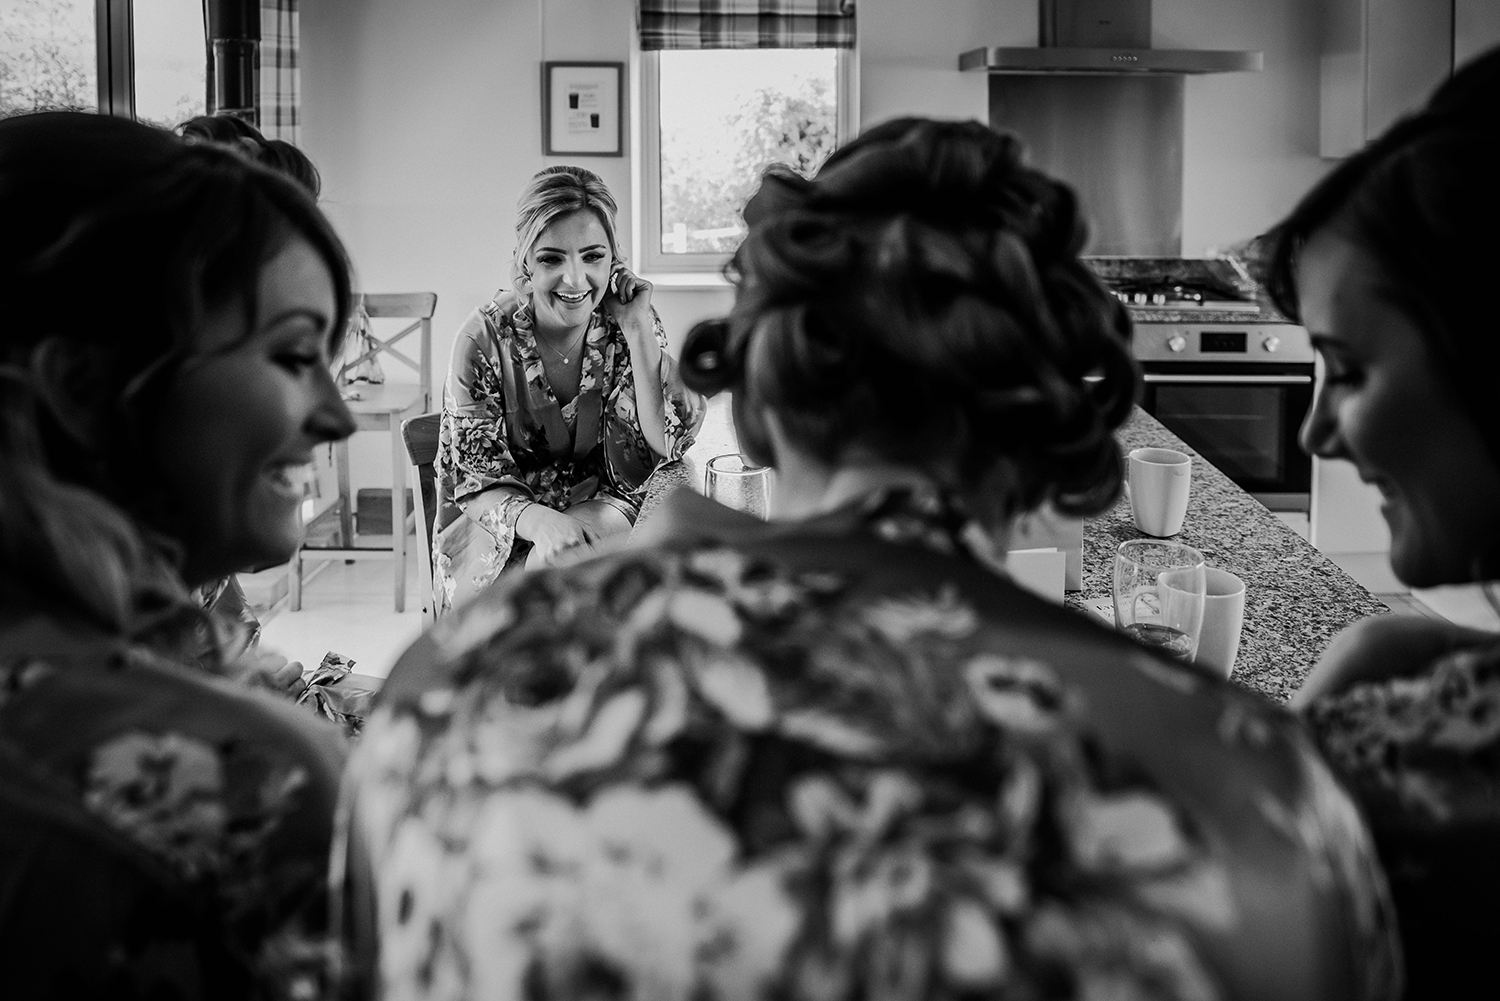 BW photo of the bridesmaids having a laugh in the kitchen